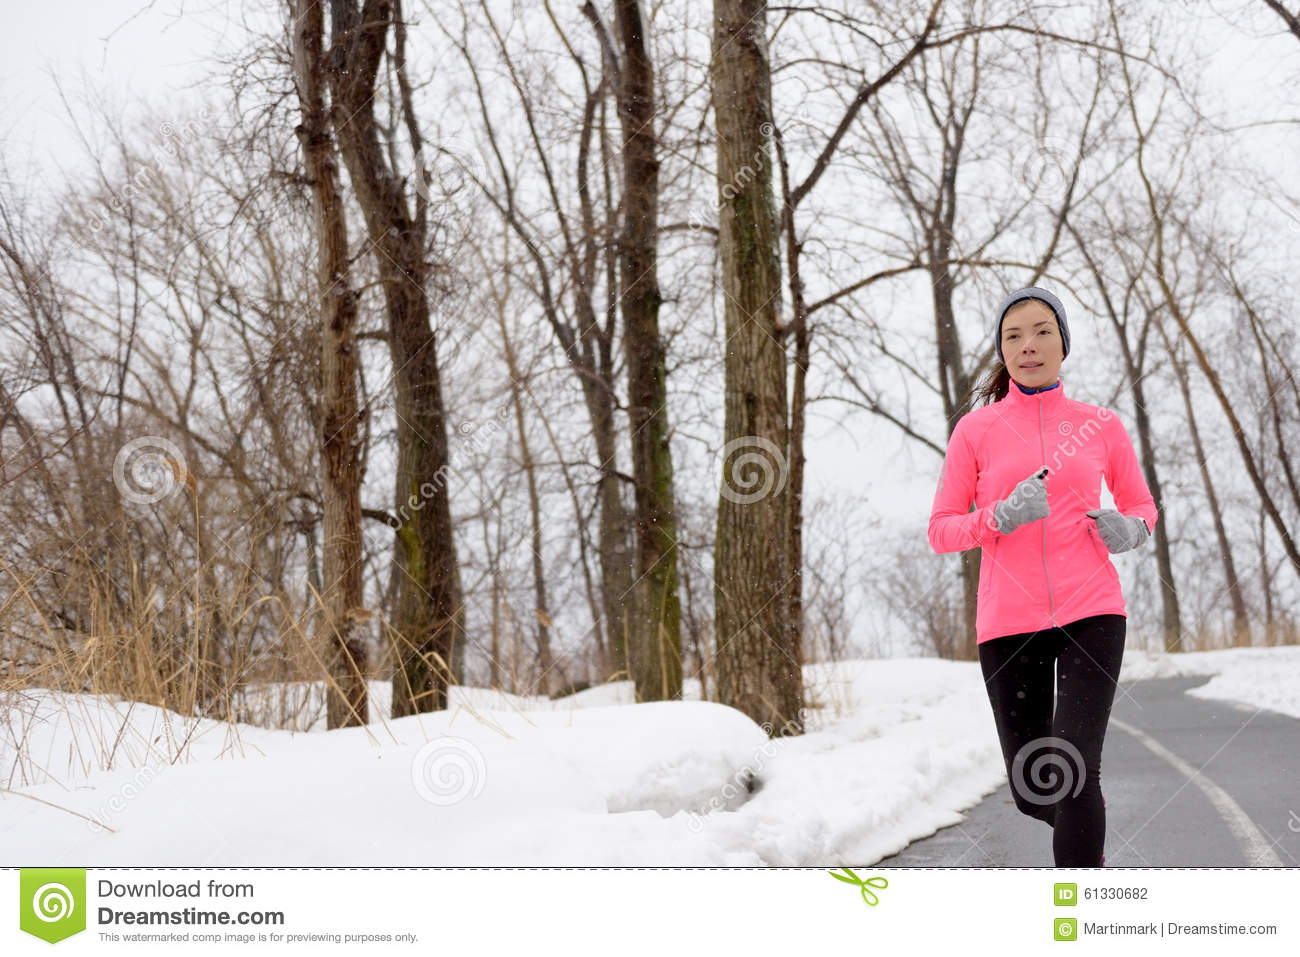 Winter cardio exercise - woman jogging running